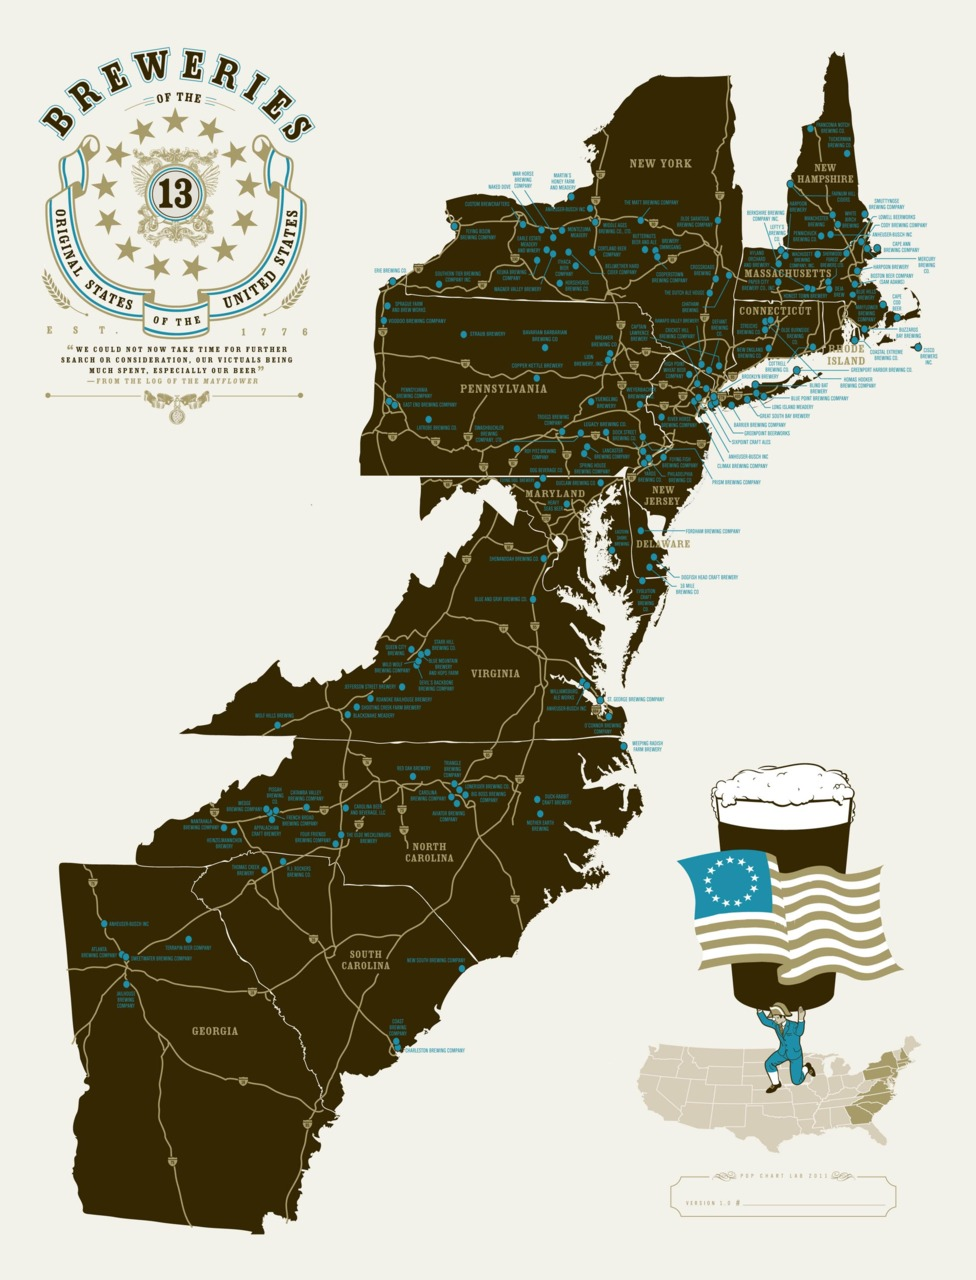 Breweries of the 13 Original State Infographic